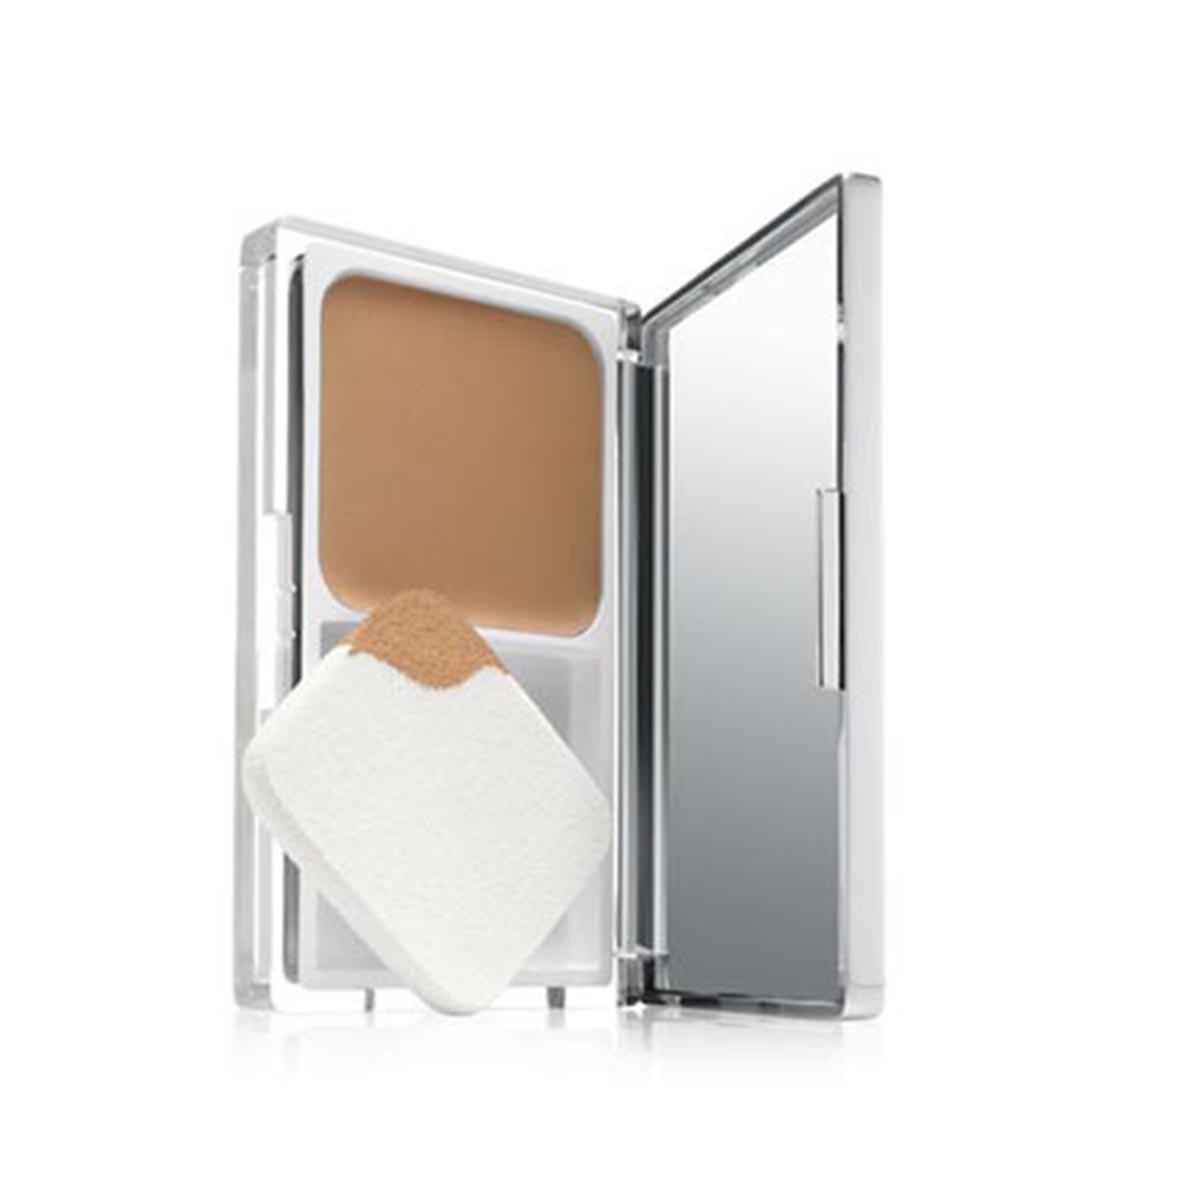 Clinique fragrances Acne Solutions Powder Makeup 05